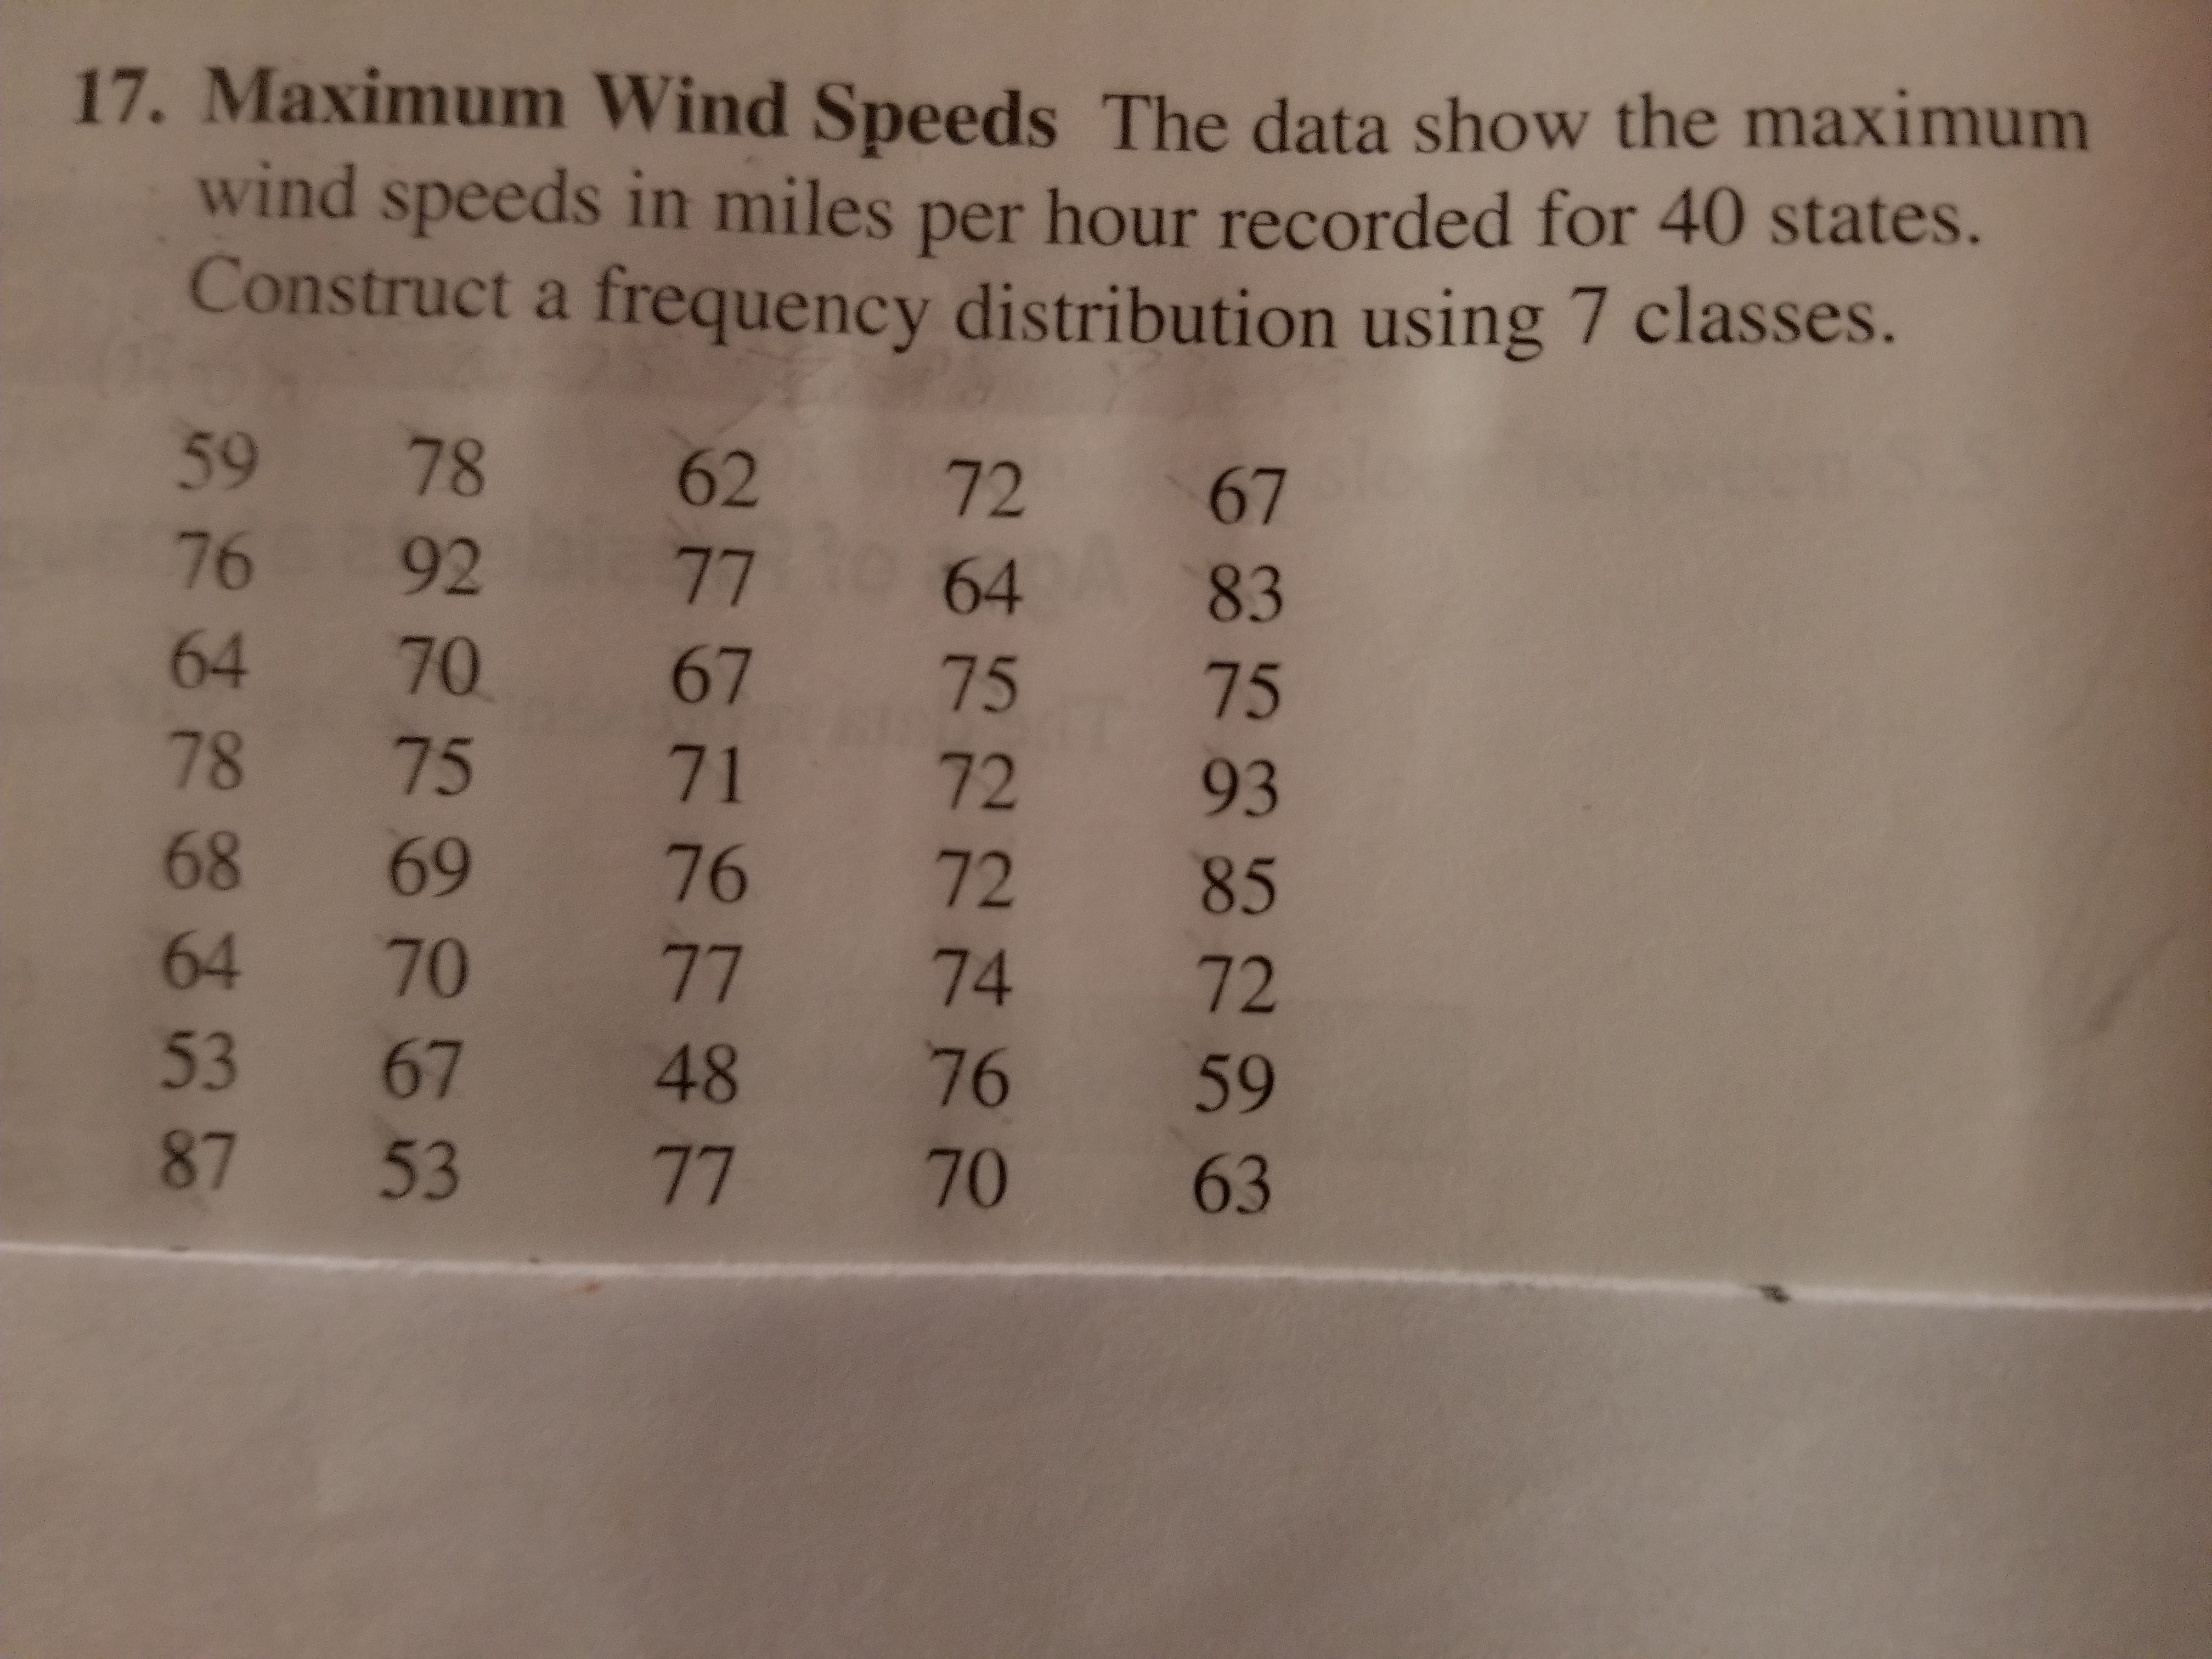 17. Maximum Wind Speeds The data show the maximum wind speeds in miles per hour recorded for 40 st Construct a frequency distribution using 7 classes. ates. 59 78 62 72 67 76 92 7764 83 64 70 67 75 75 78 75 71 72 93 68 69 76 72 85 64 70 77 74 72 53 67 48 76 59 87 53 77 70 63